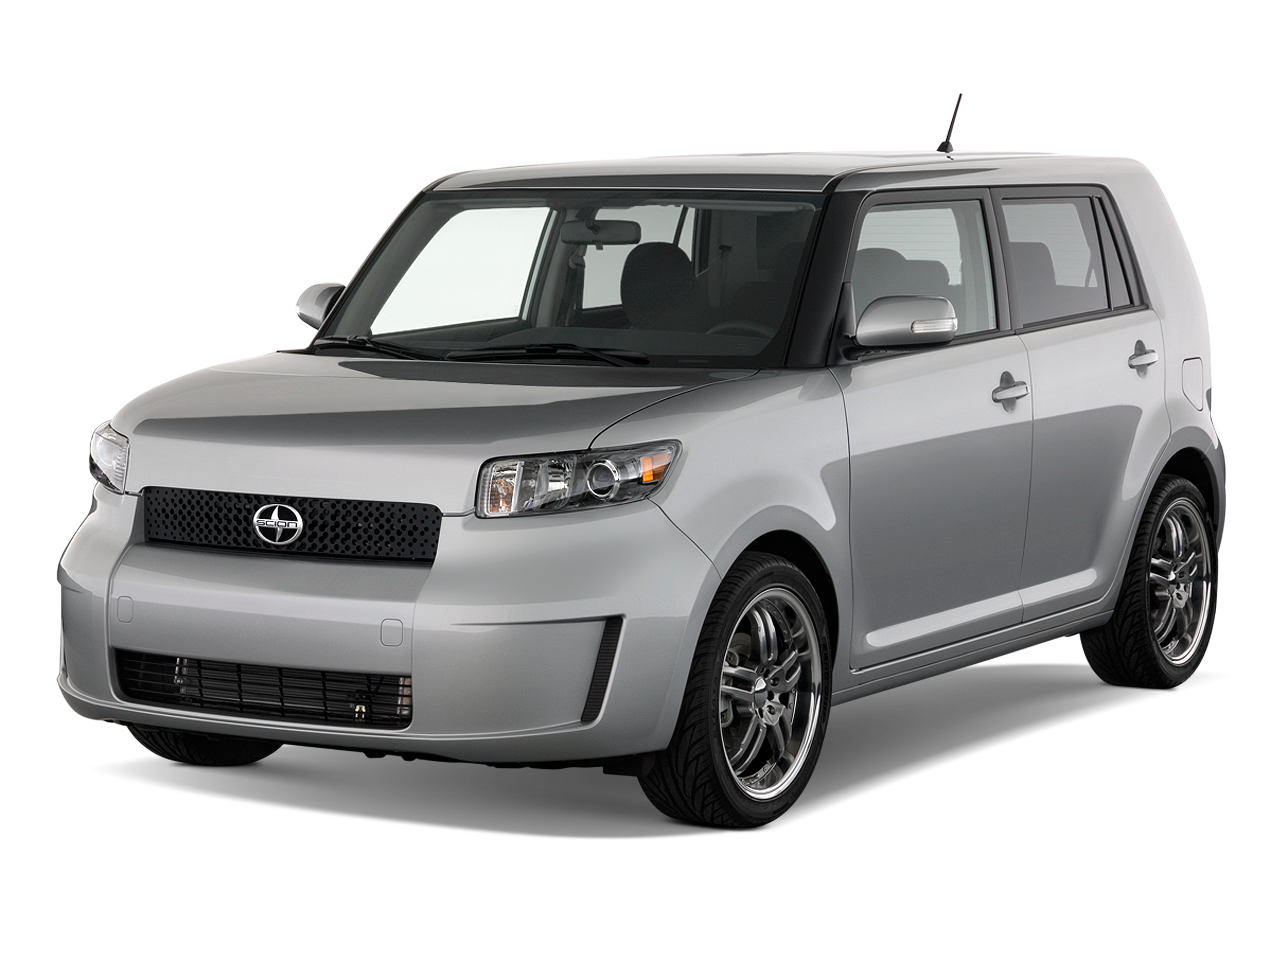 2010 Scion Xb #16